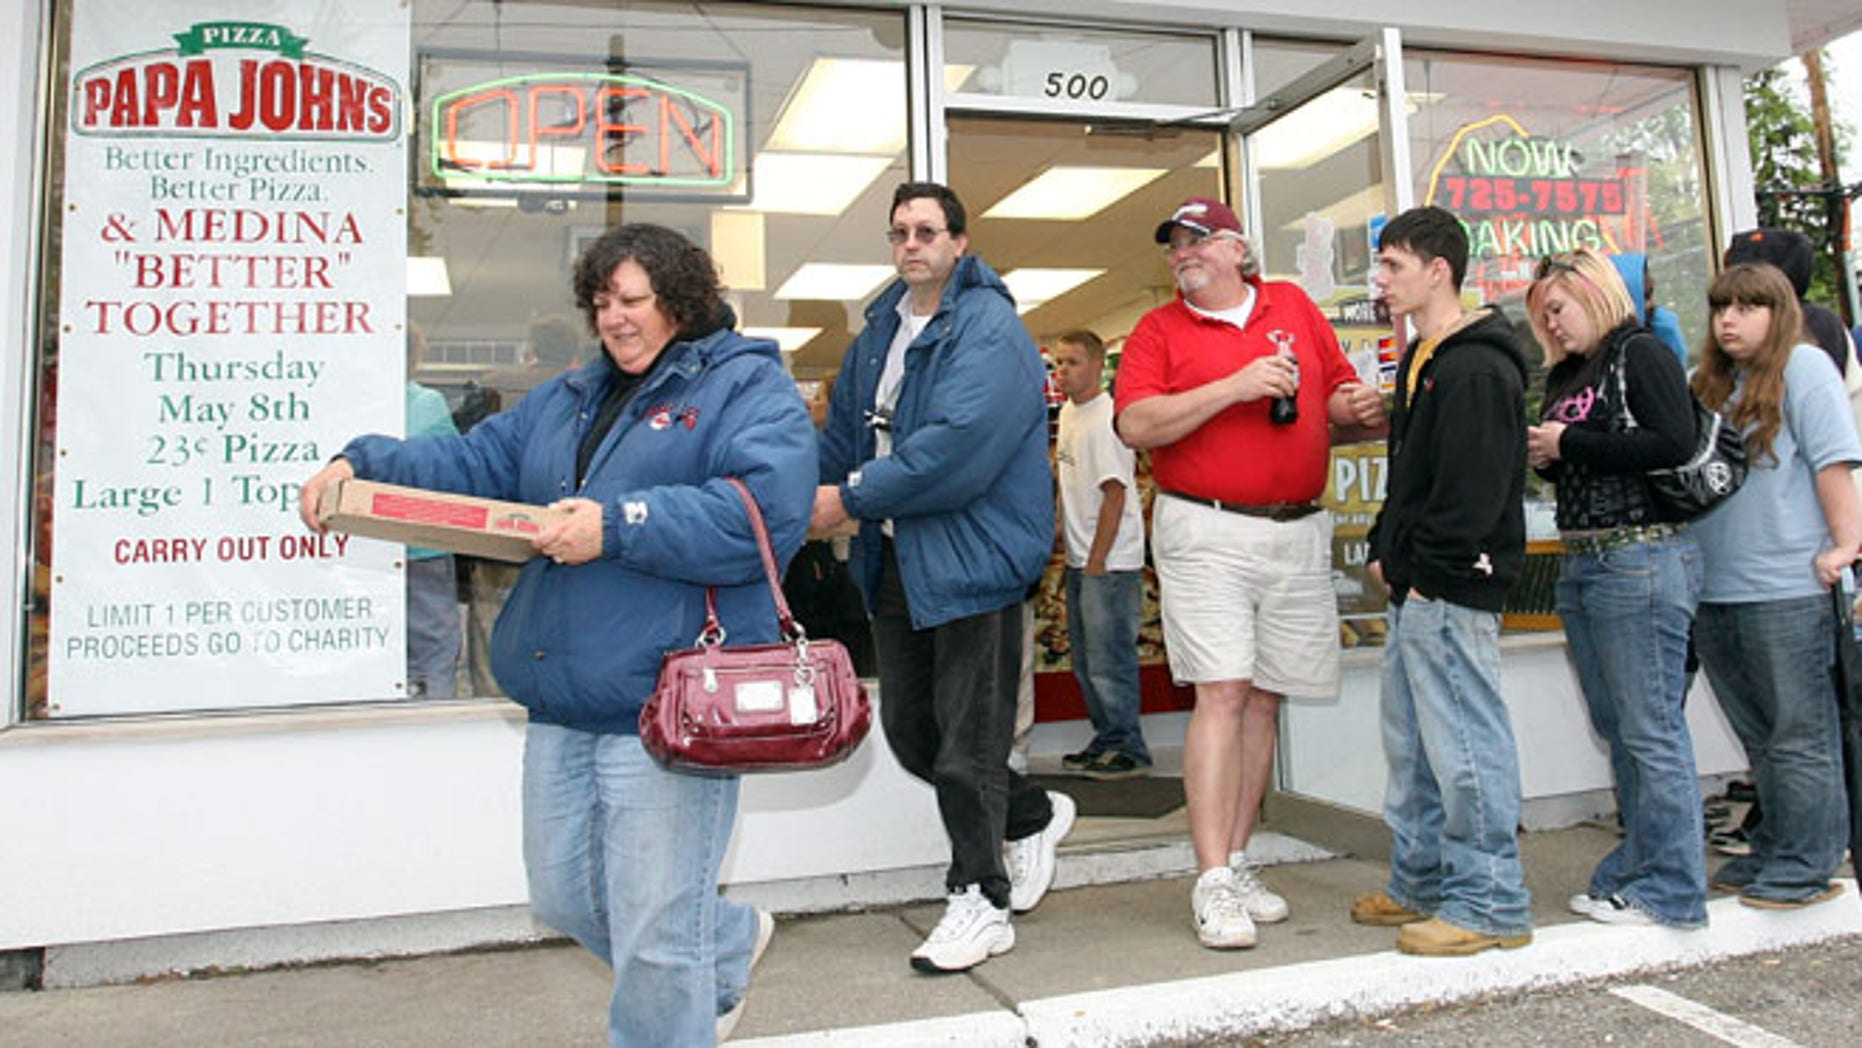 FILE: May 8, 2008: People leave a Papa John's store with pizzas they purchased for 23 cents in Medina Ohio .